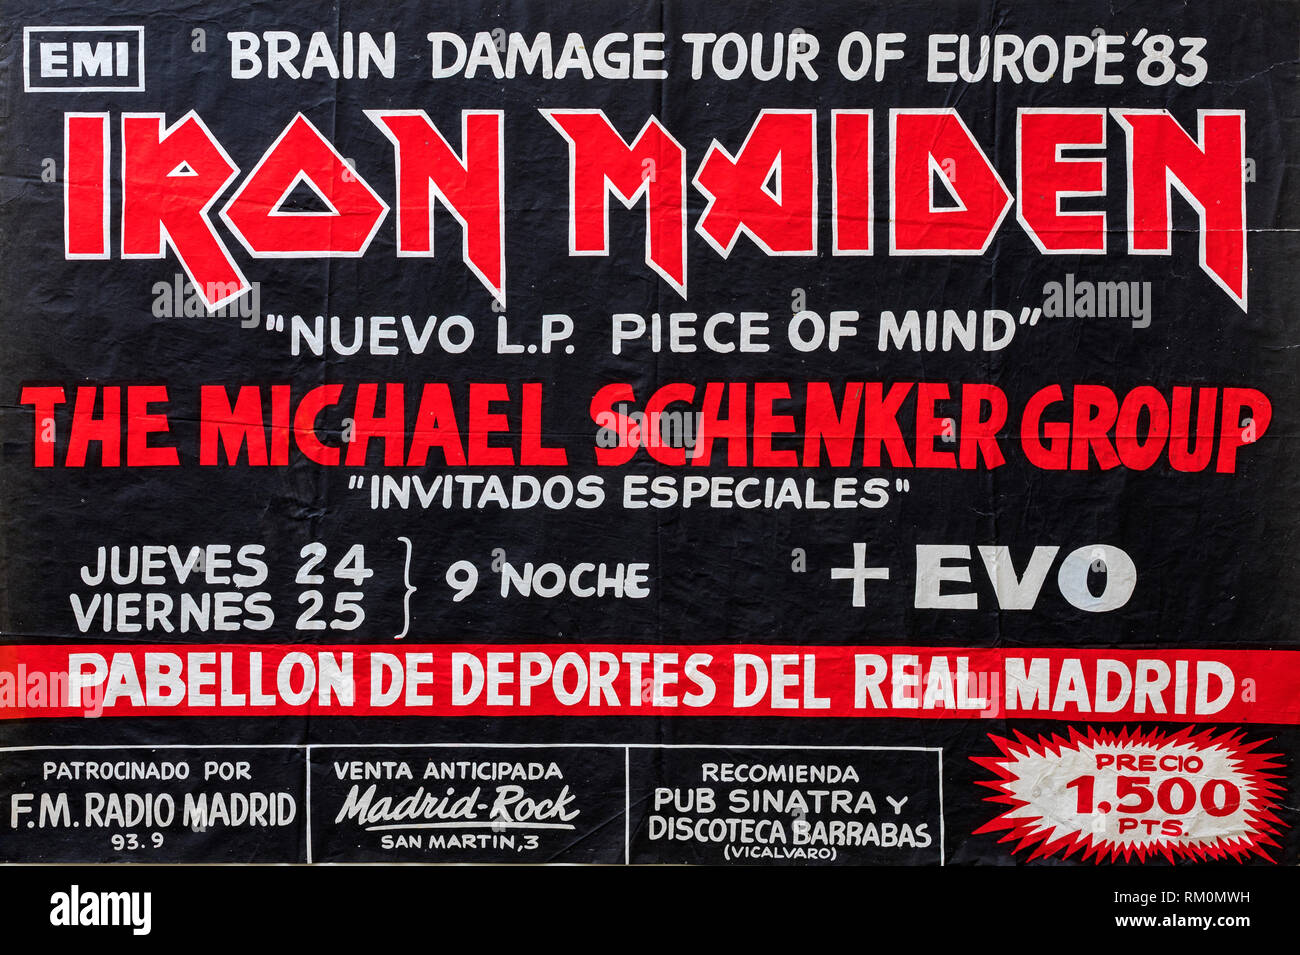 Iron Maiden, Piece of Mind promo album and tour 1983 Madrid, Musical concert poster Stock Photo